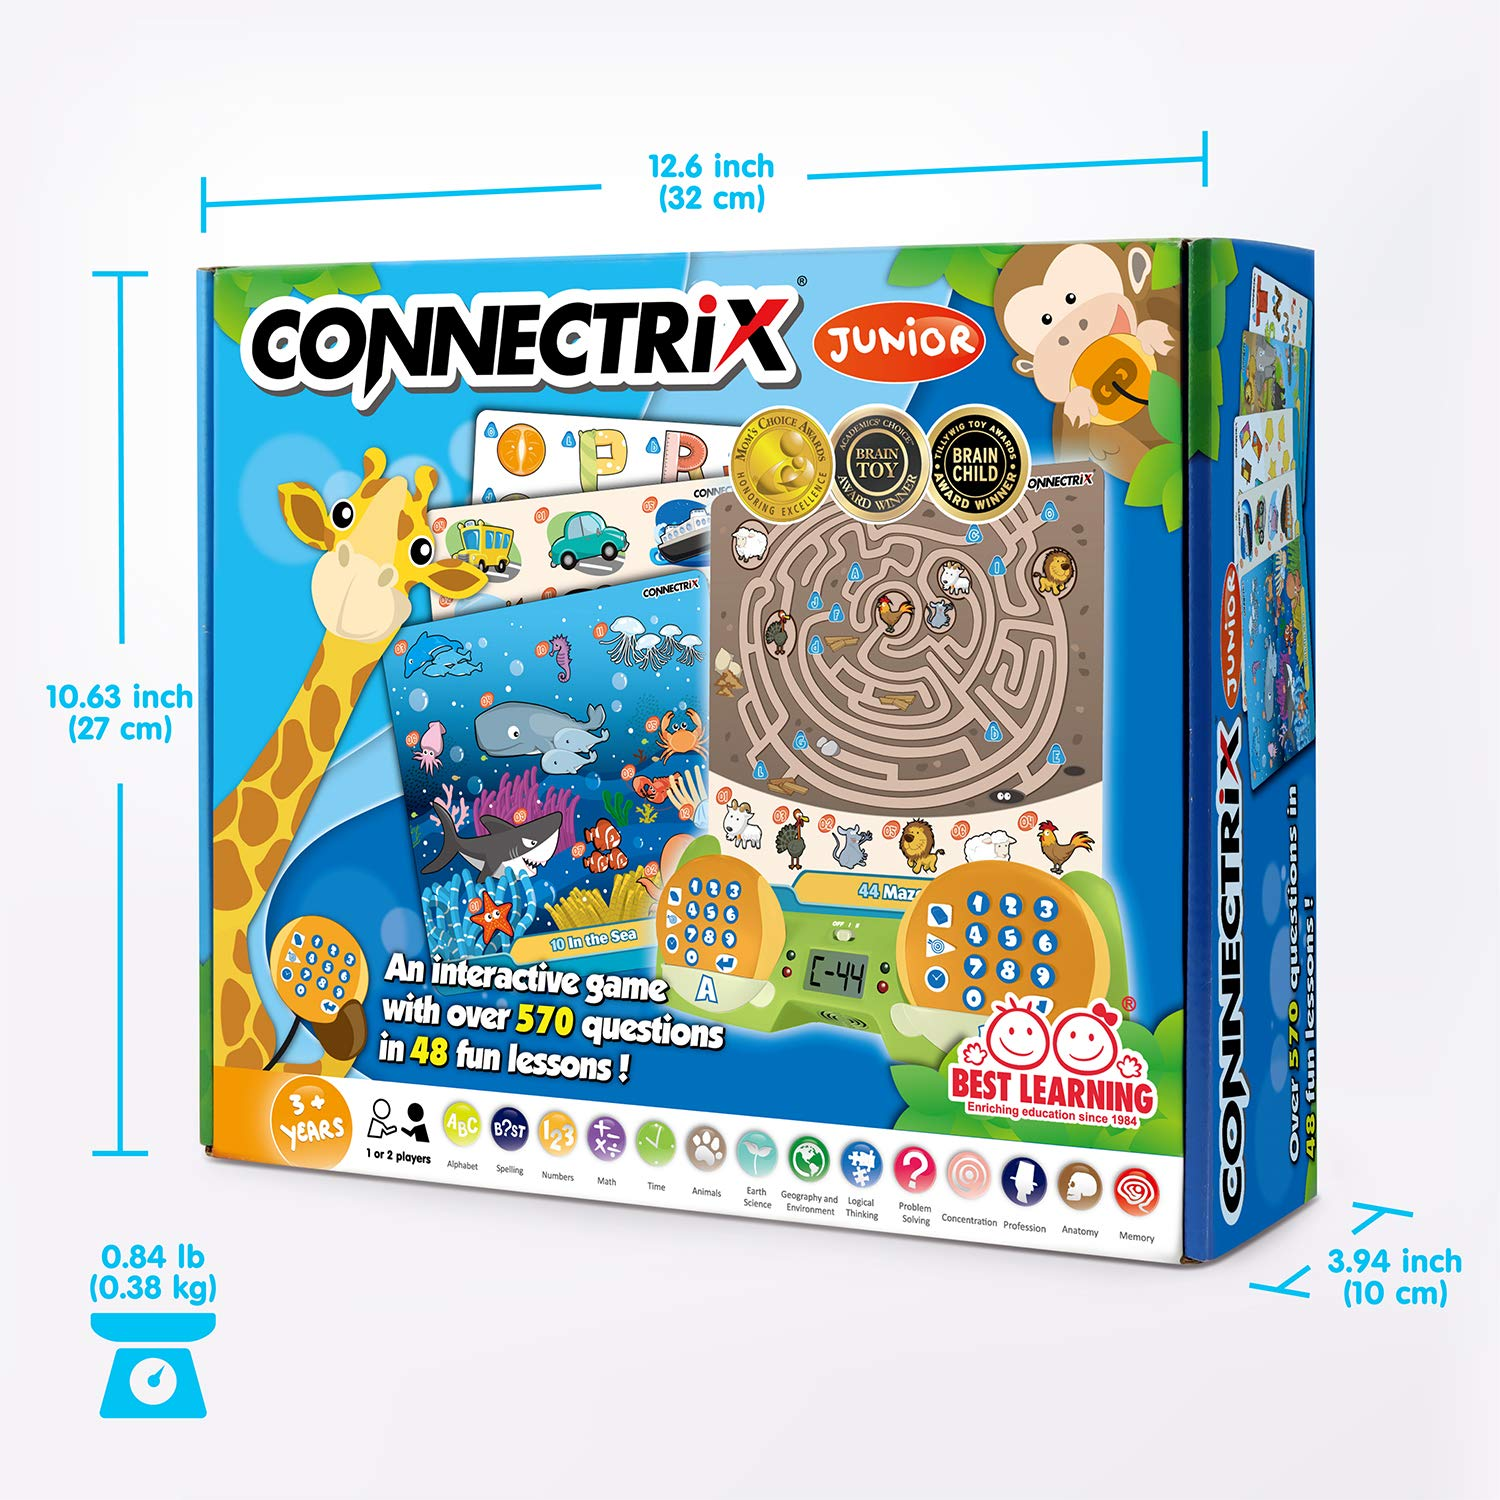 BEST LEARNING Connectrix Junior - Memory Matching Game for Kids - Original Interactive Educational Match Cards Toddler Games for 3-8 Year Olds - Classic 2-Player Concentration Card Toys for Toddlers by BEST LEARNING (Image #7)